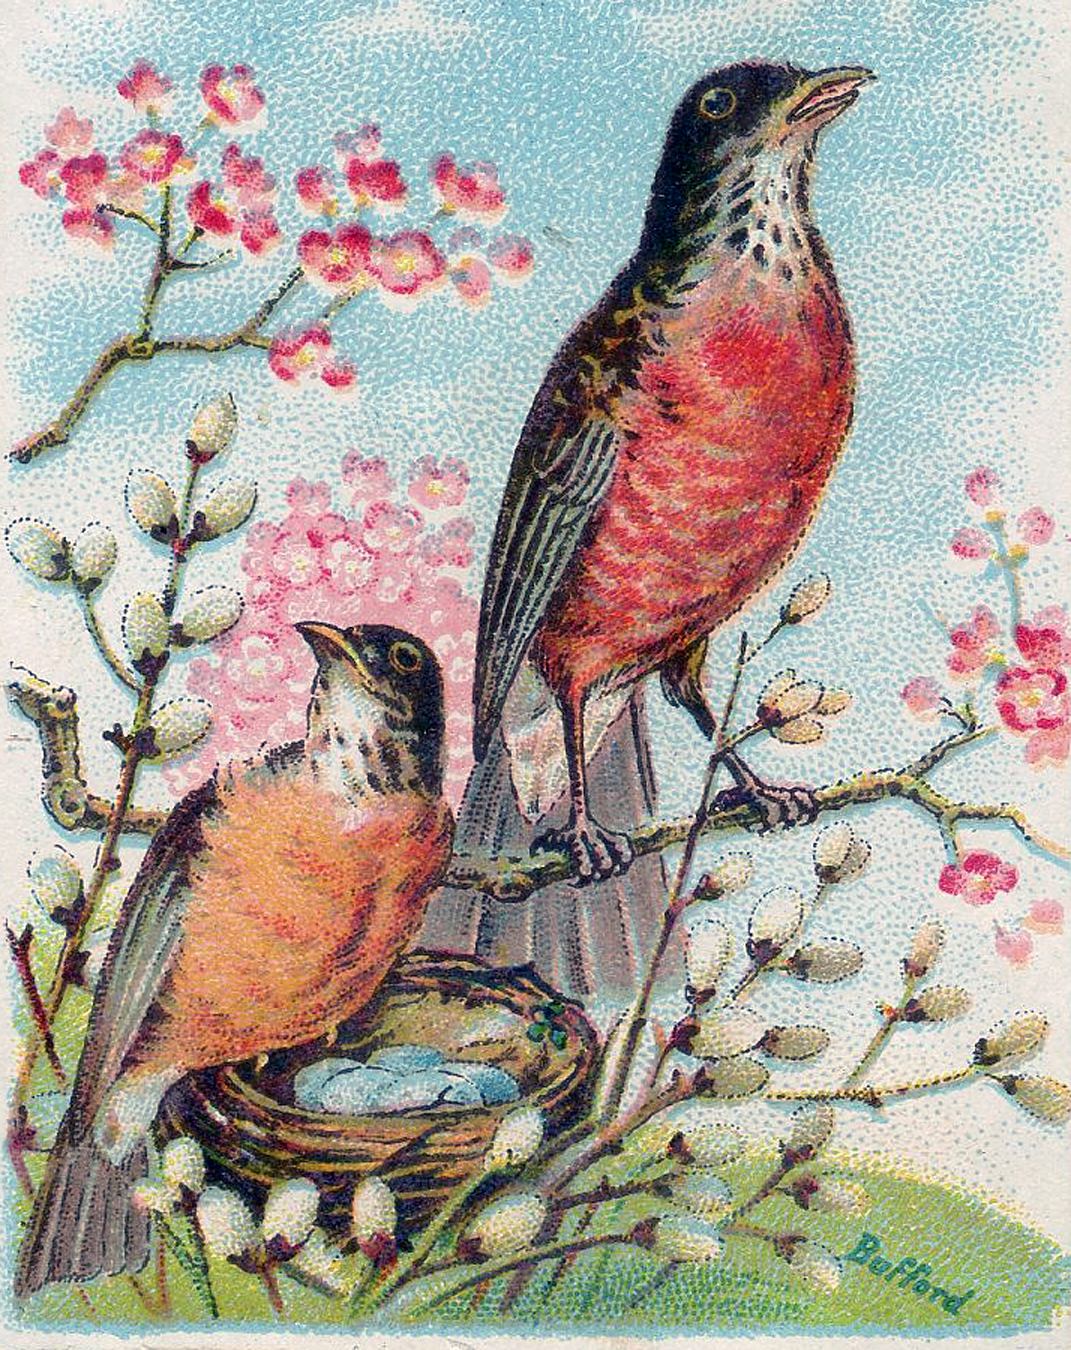 Vintage Robin's Nest Image - The Graphics Fairy